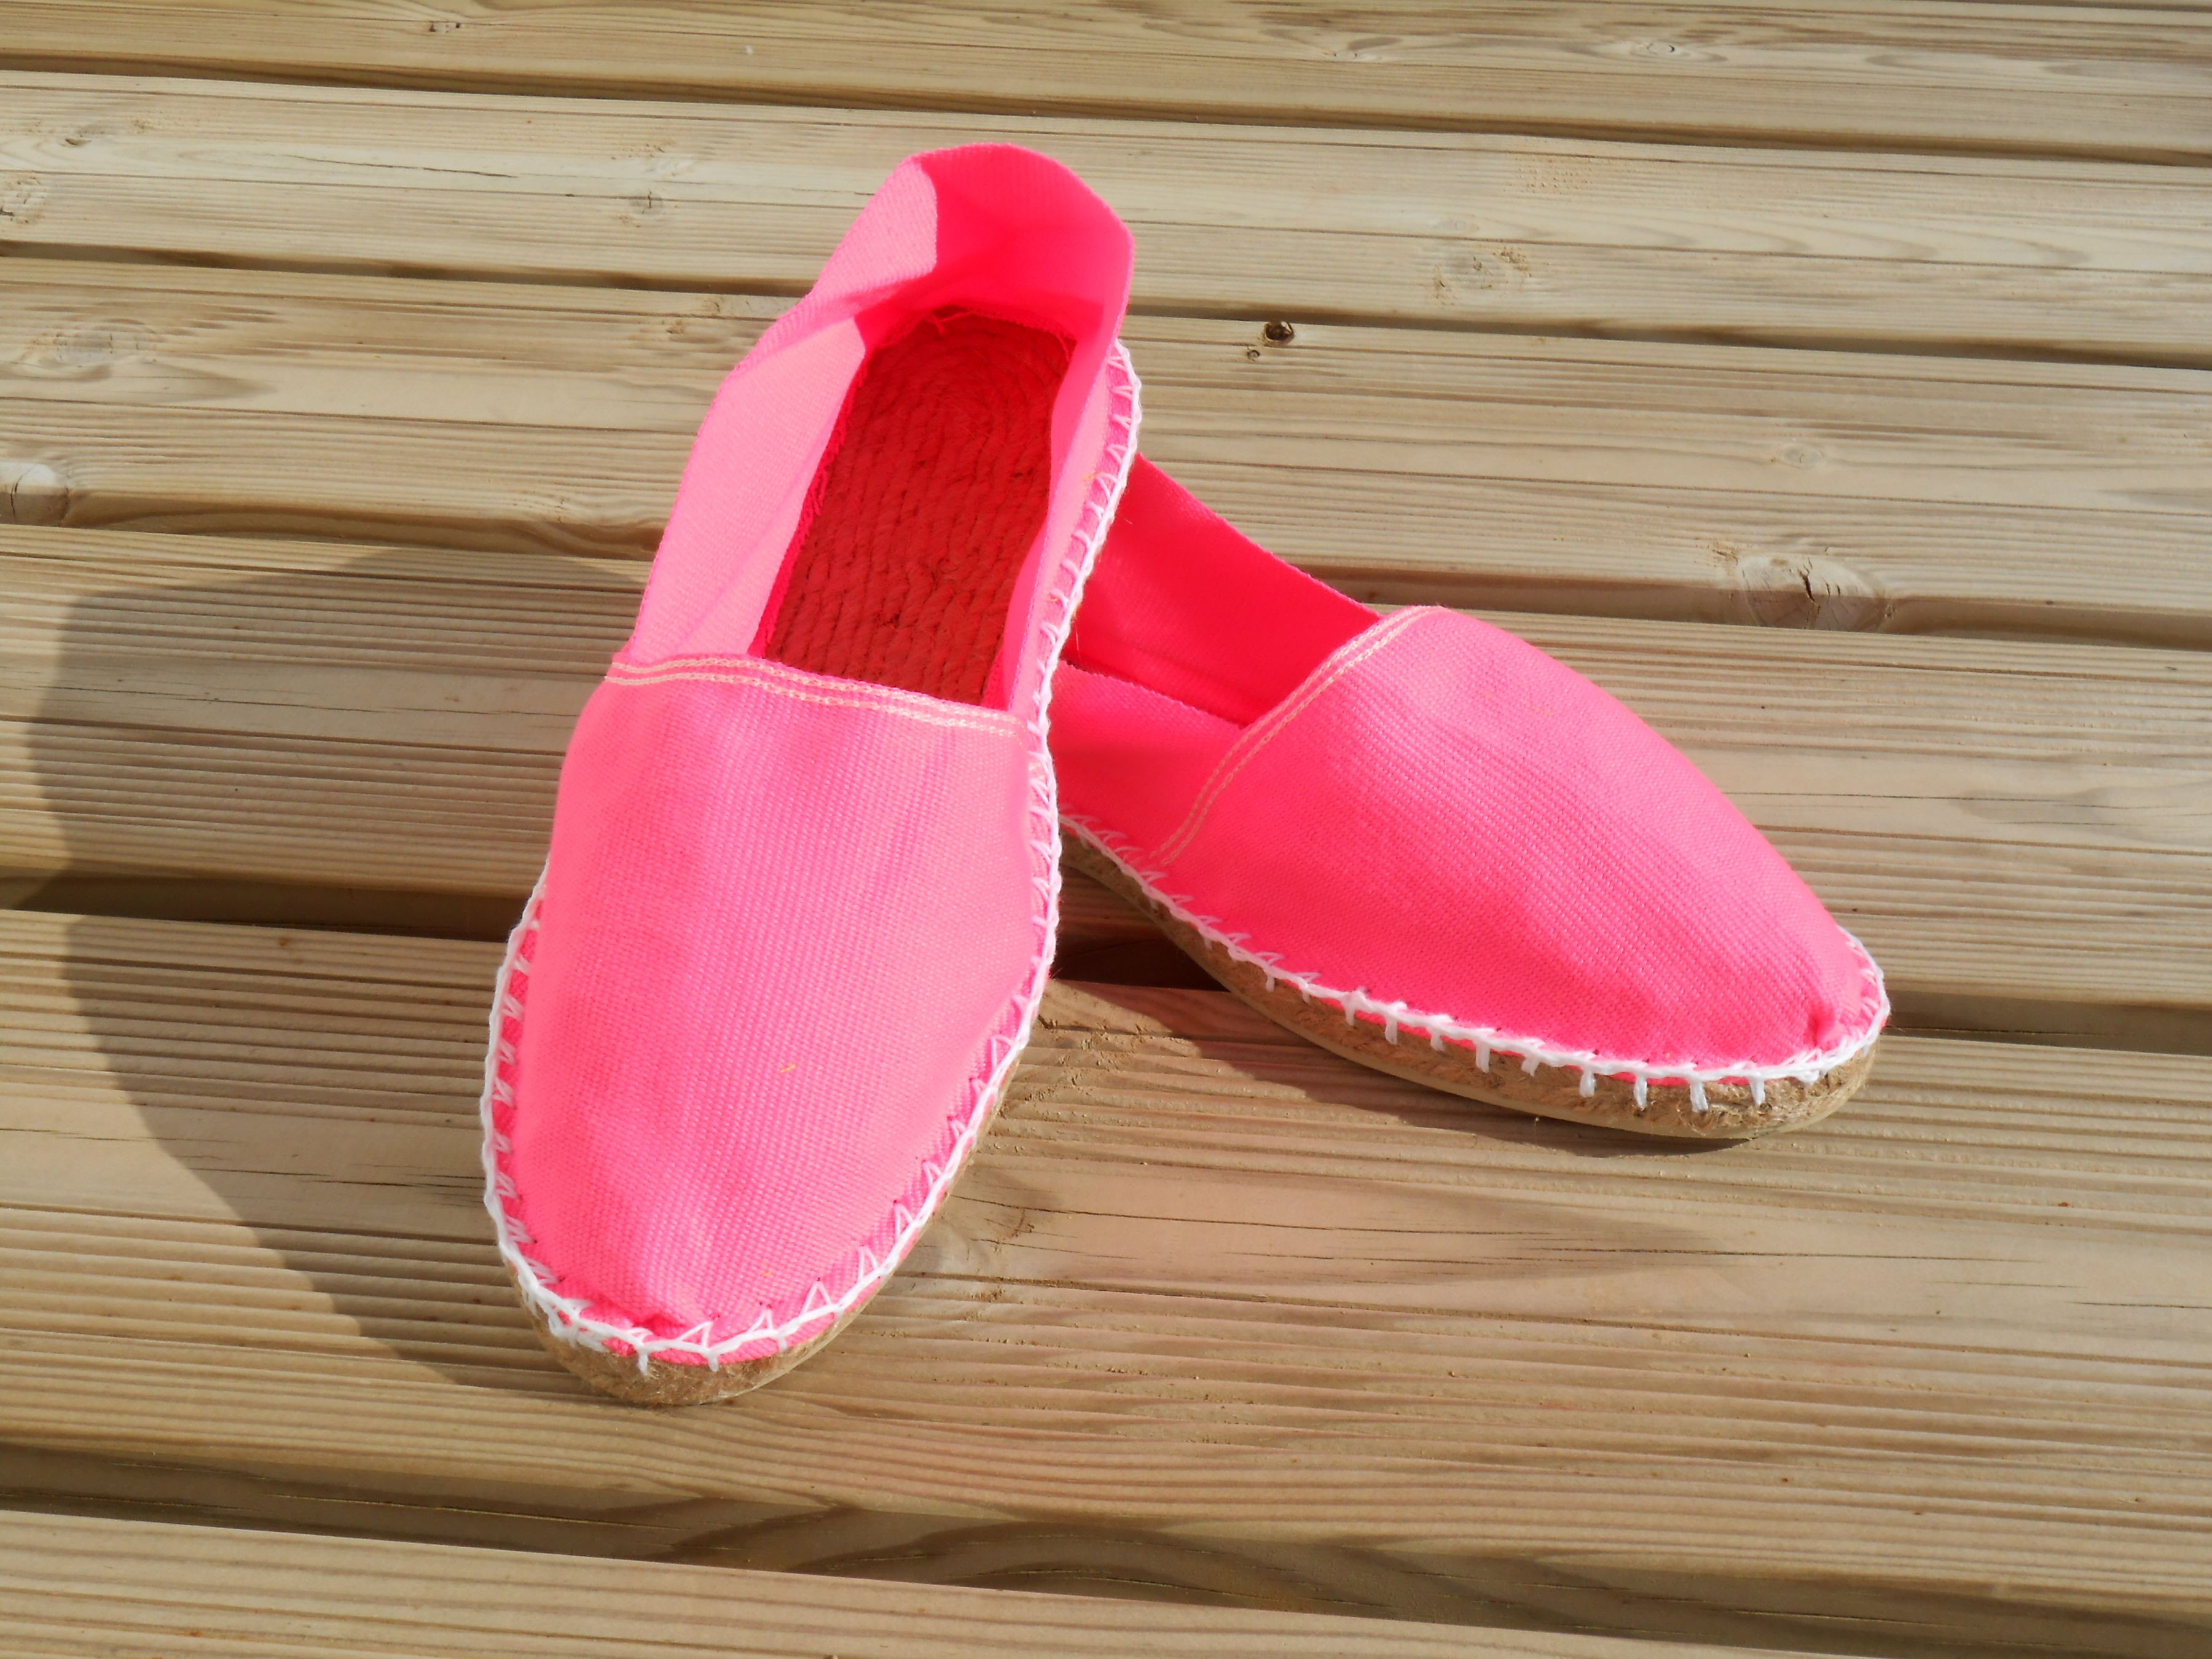 Espadrilles basques rose fluo taille 39